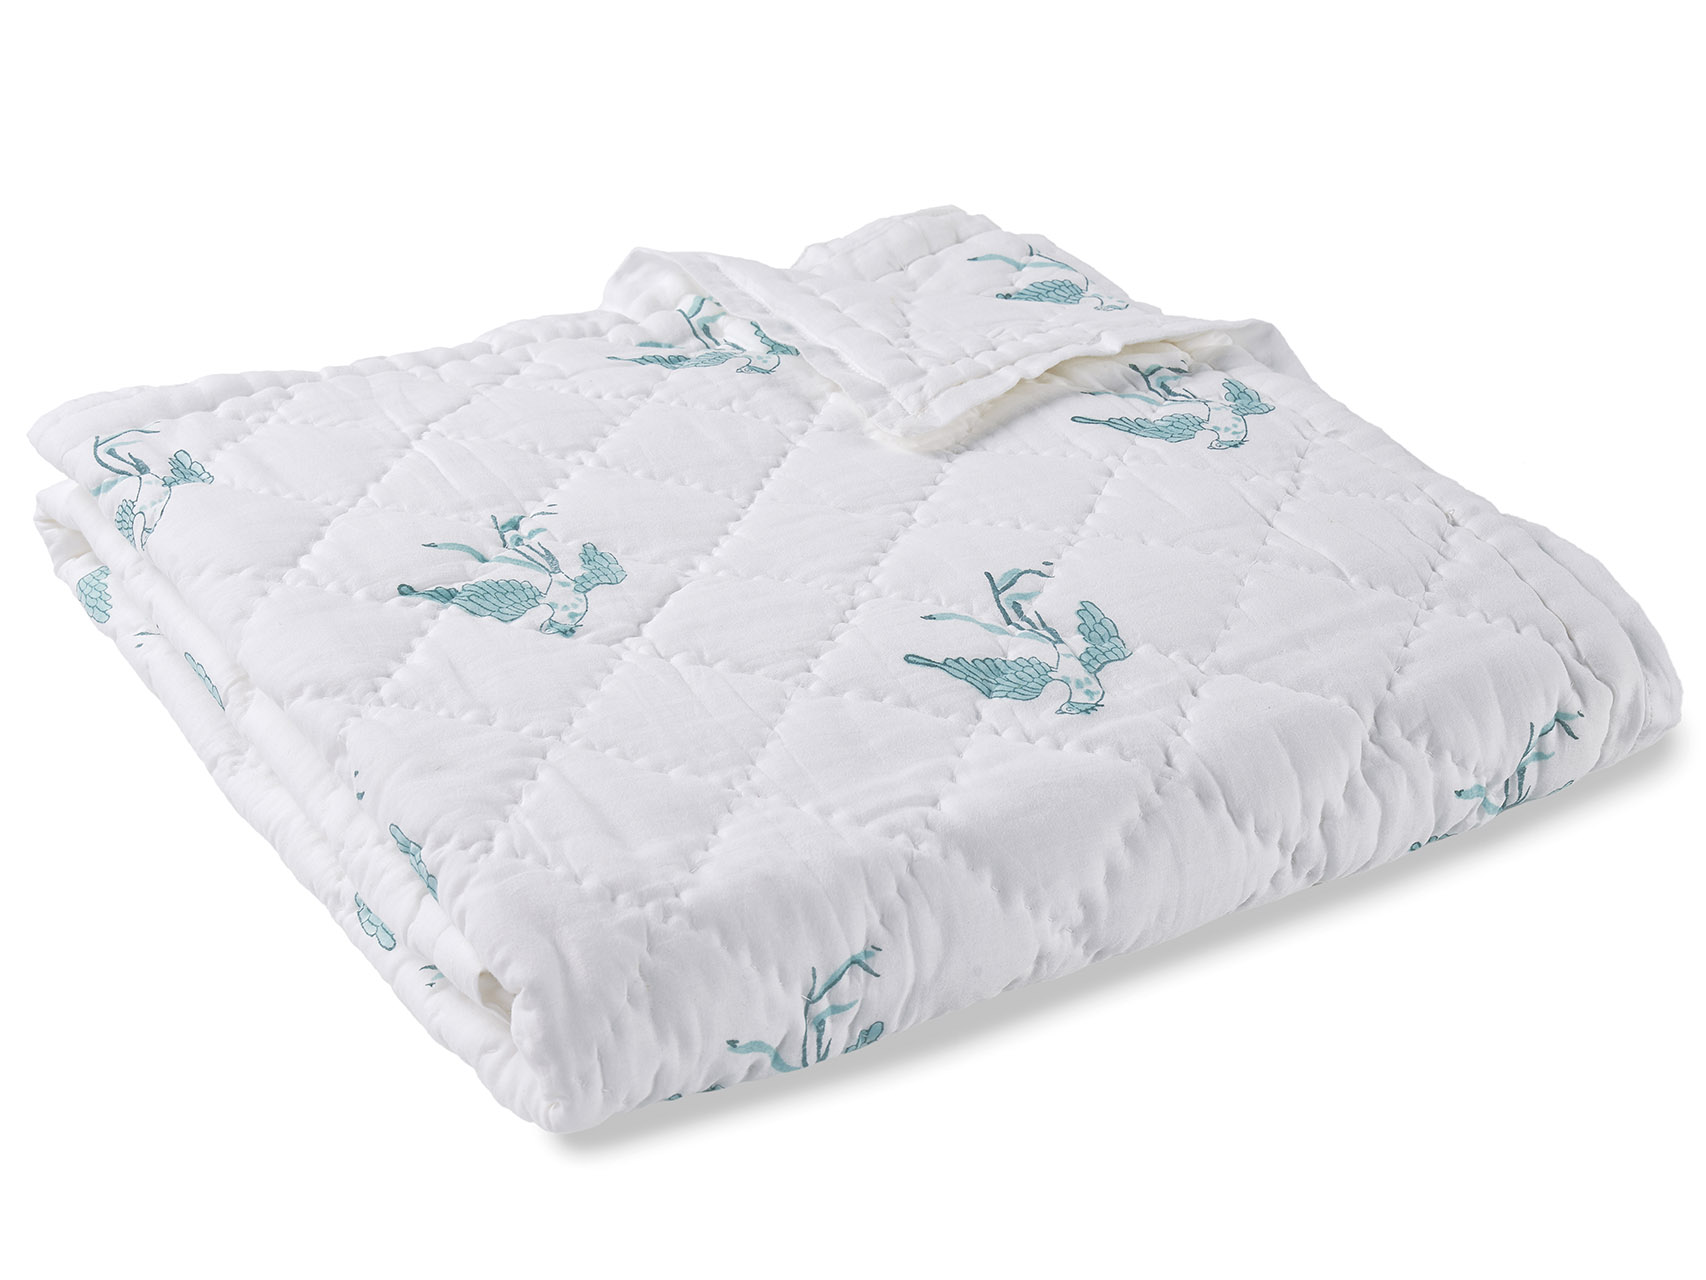 Your baby should not have to wake up in a film of sweat with stale air trapped within a thick stuffy quilt. Quilts should breathe just as we do. Our solution is simple and tried and tested over generations: cotton, cotton, cotton! All our quilts are constructed from fine breathable cotton voile and filled with pure organic cotton. As a result, the quilts are lightweight and porous, allowing moisture to evaporate. An ADITYA AHUJA quilt is soft, comfortable and impeccably hand crafted. Our quilts are hand stitched in small diamond patterns. With a hand-block print on the front, the reverse is a pure white-on-white diamond stitch. So, if you ever need to shake things up, turn it around and enjoy your new, modern and minimalistic quilt.